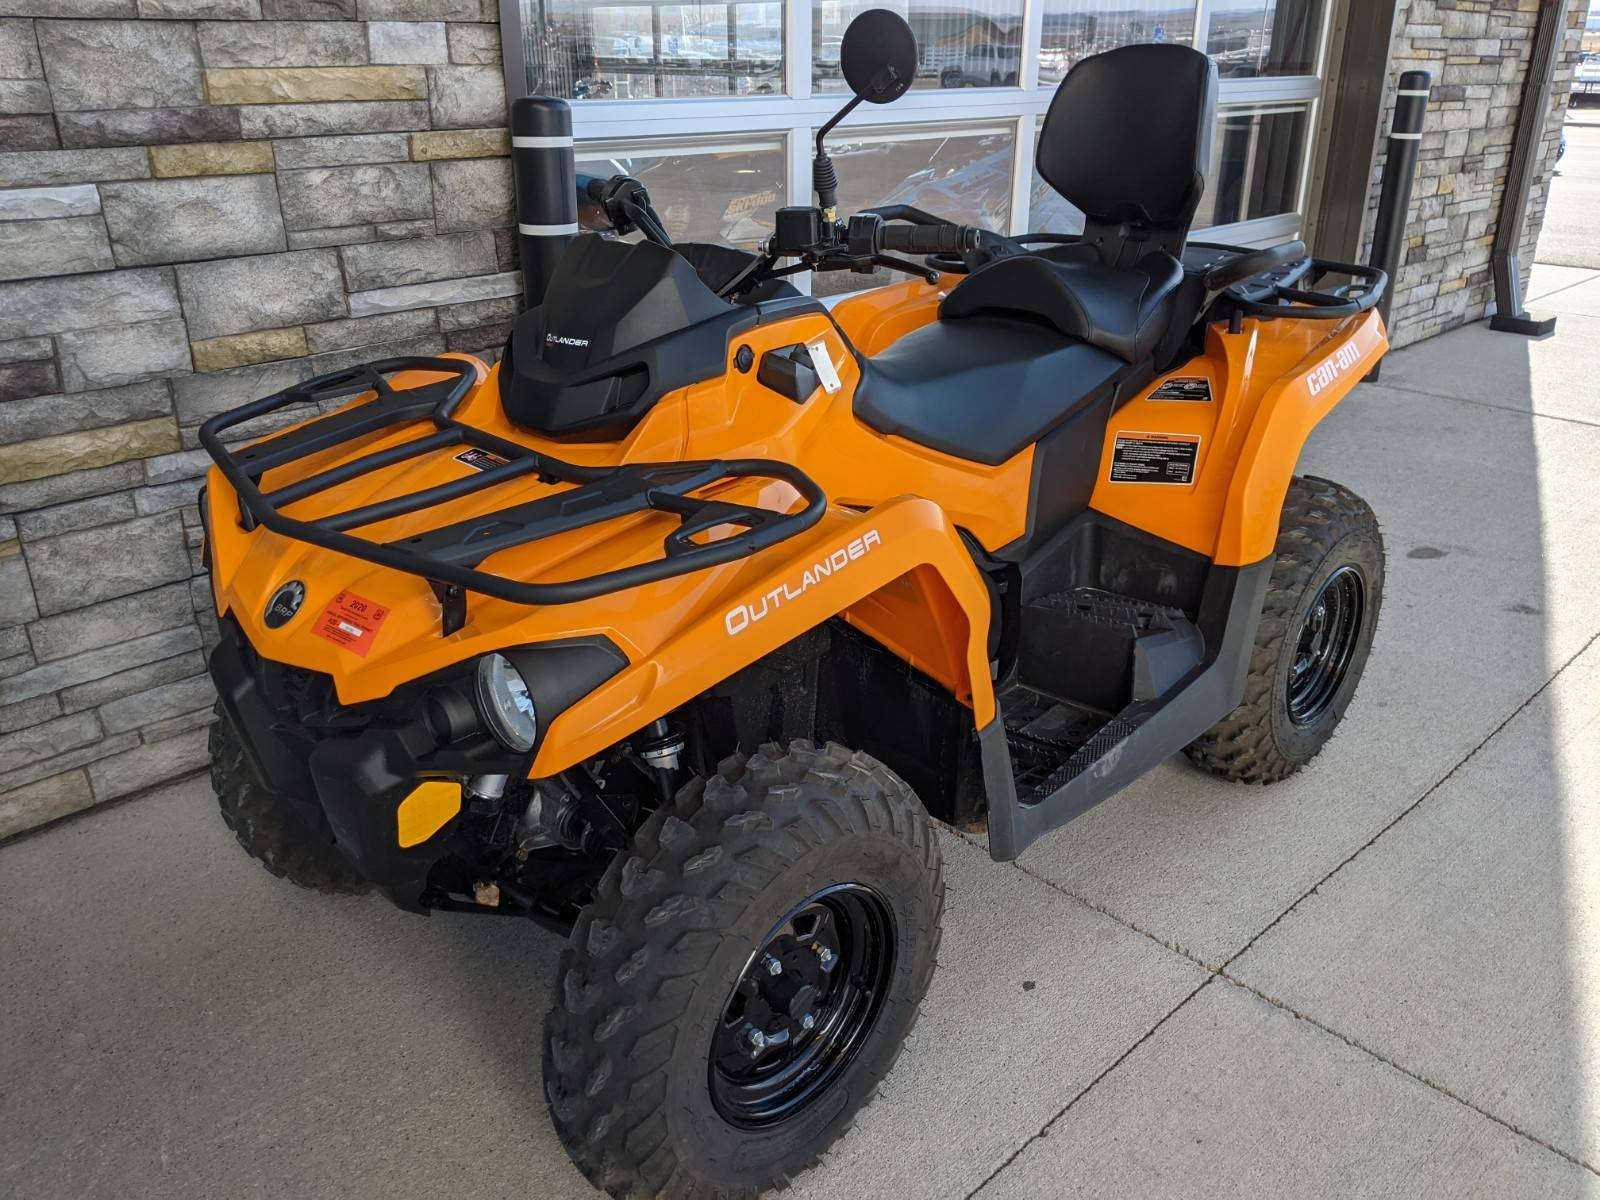 2020 Can-Am Outlander MAX DPS 570 in Rapid City, South Dakota - Photo 5